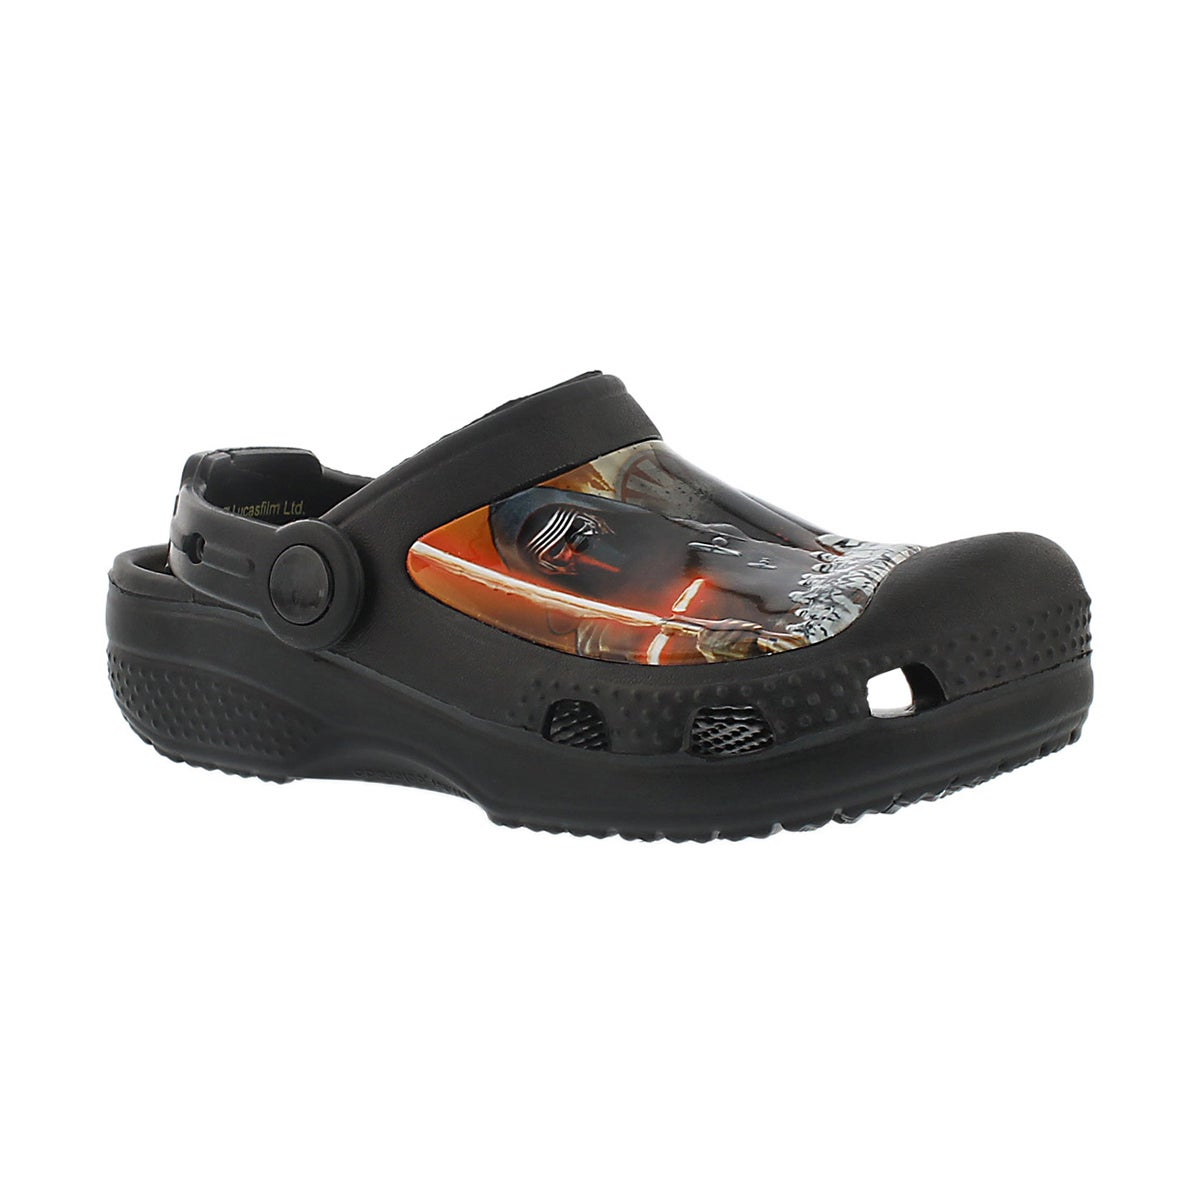 Boys' STAR WARS black comfort Character Clogs